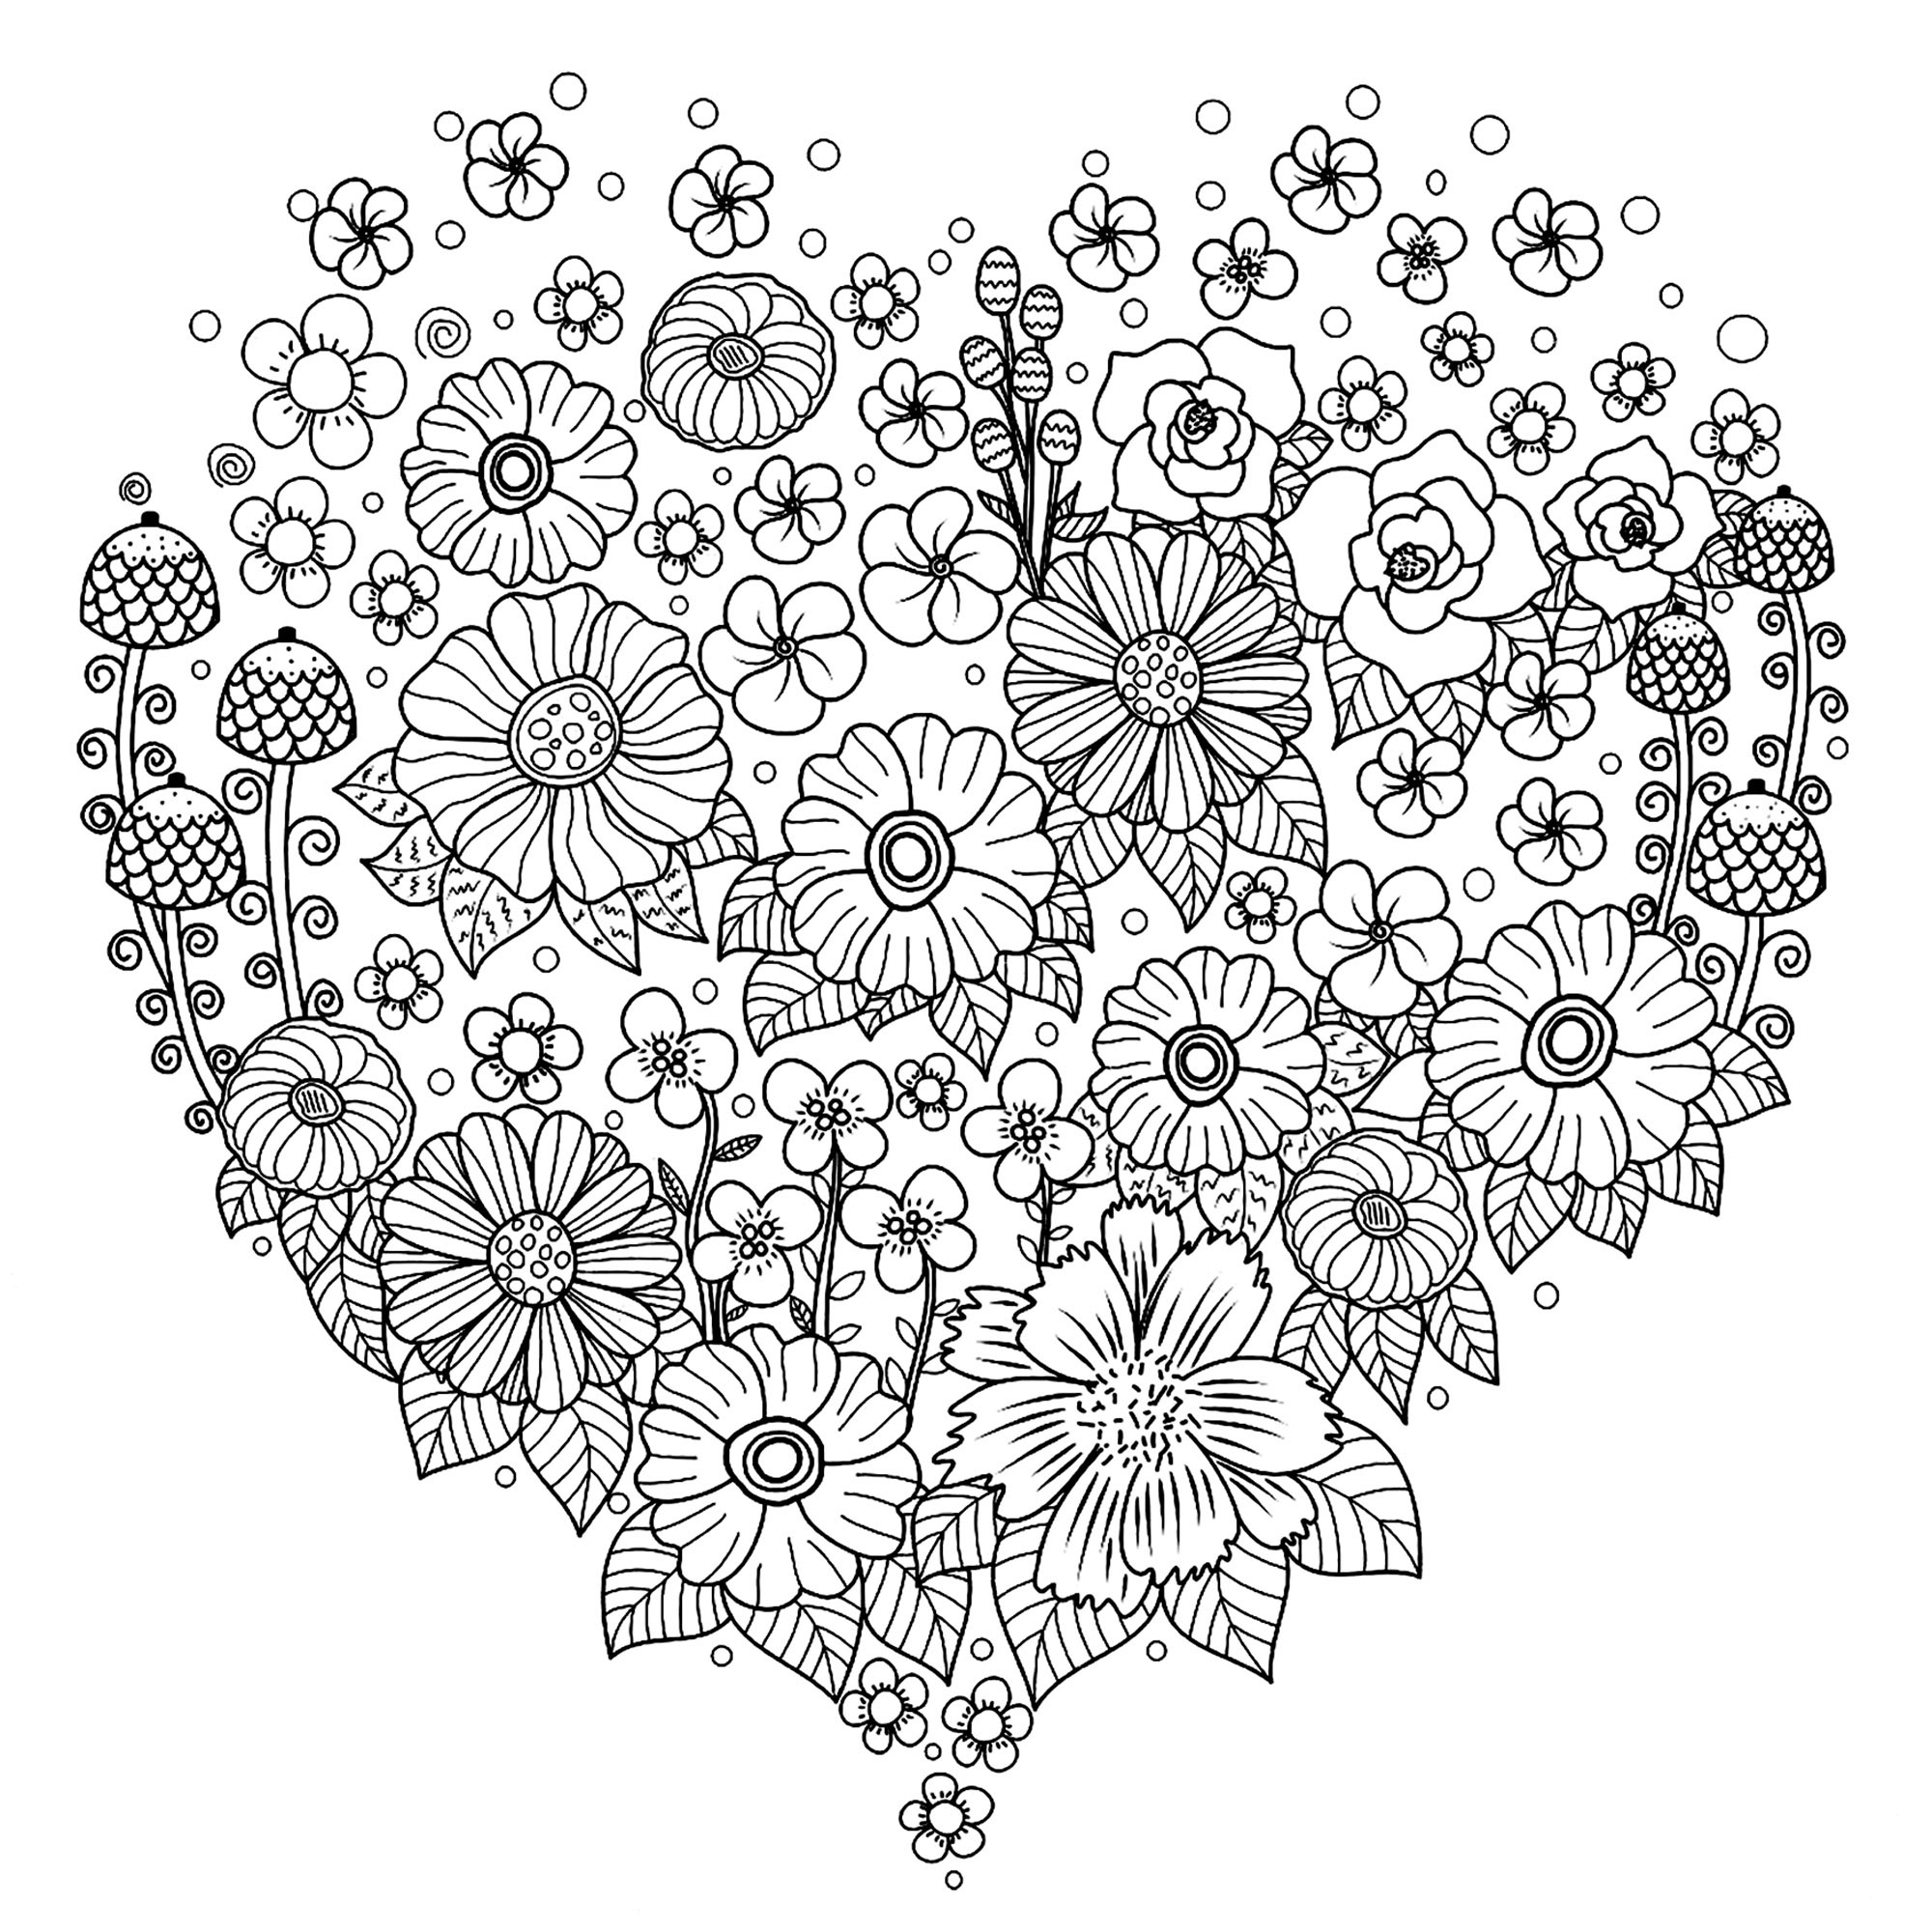 beautiful flower heart coloring pages beautiful roses and heart coloring page for kids flower flower heart pages coloring beautiful